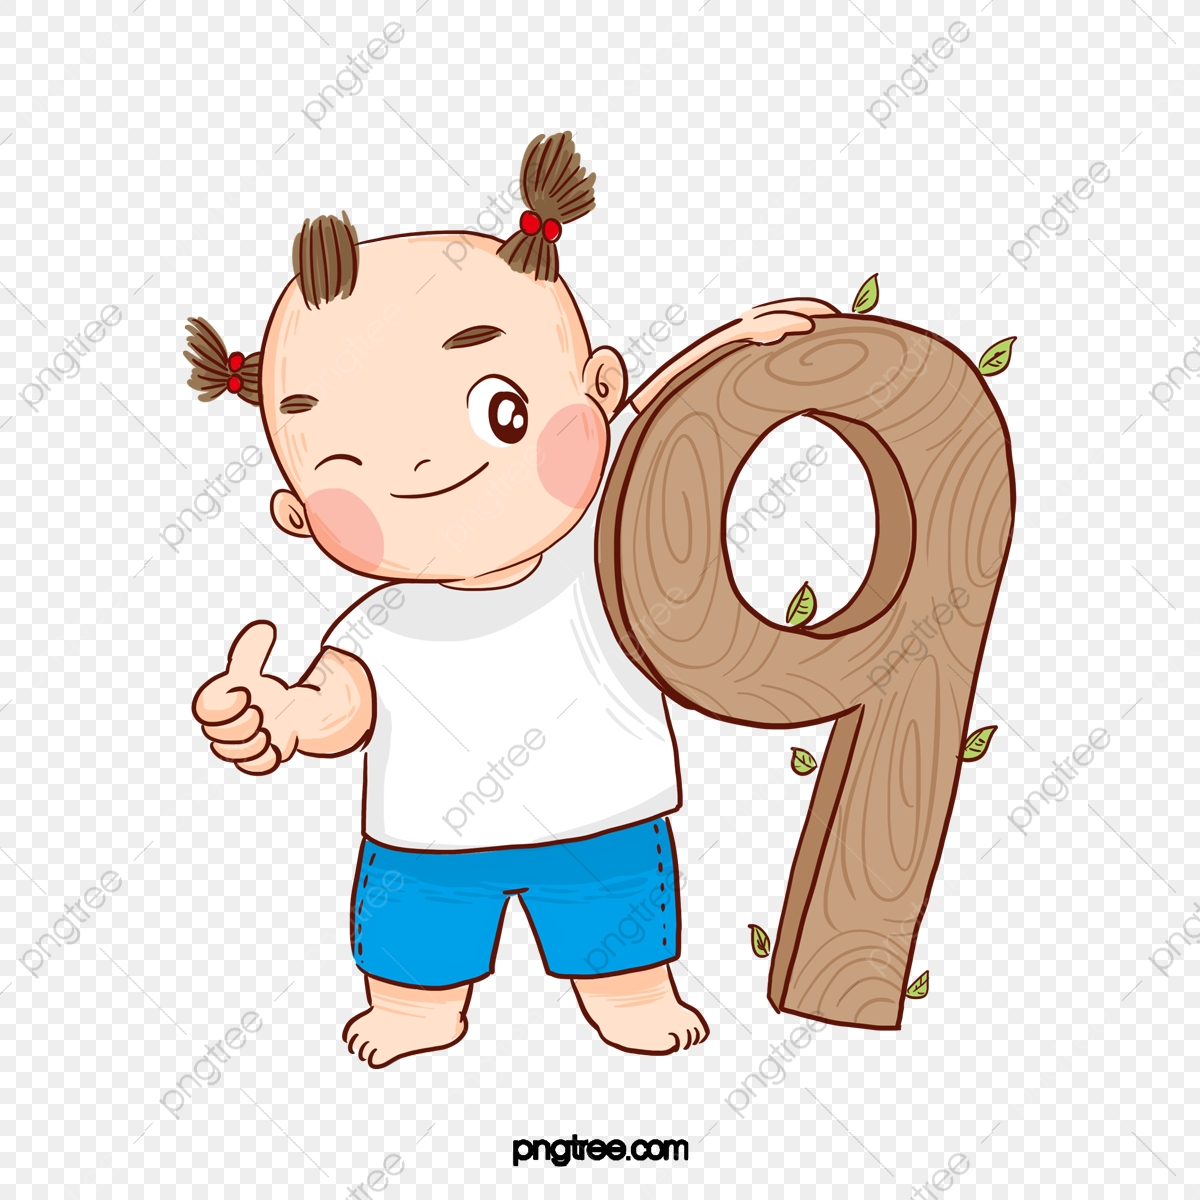 Cartoon Cute Big Eyes Boy Number 9 Cartoon Lovely Big Eyes Png